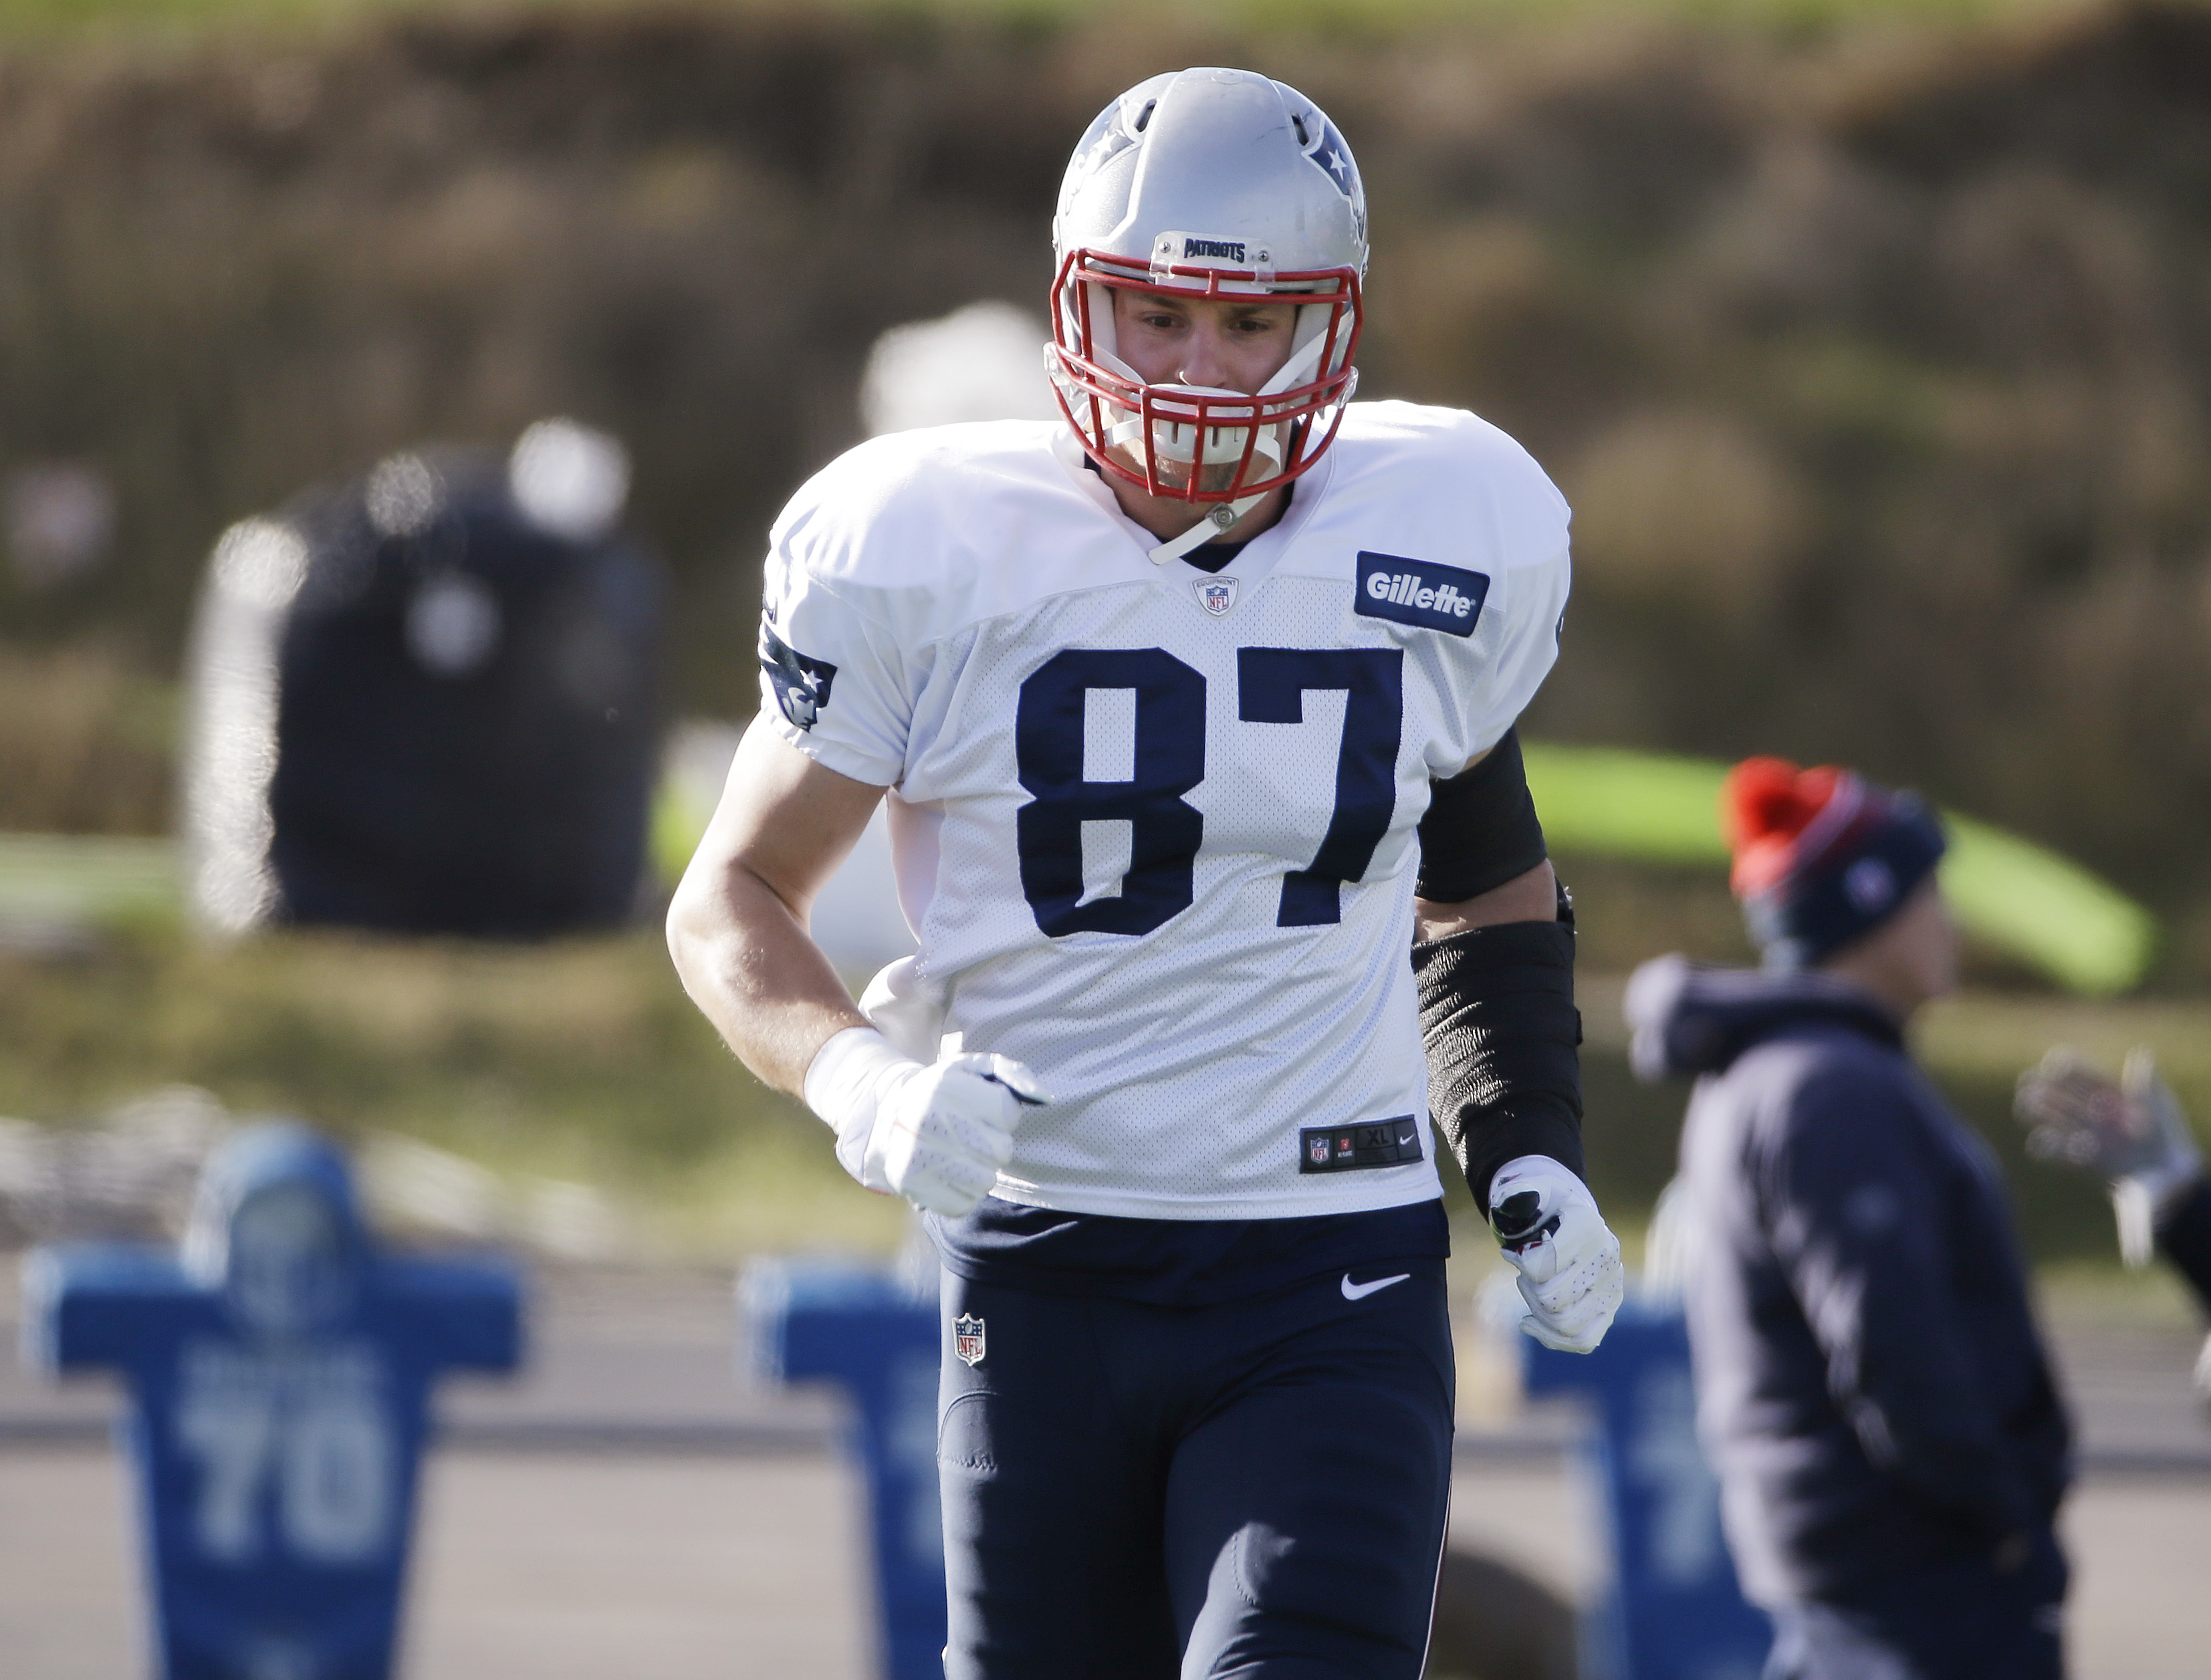 New England Patriots tight end Rob Gronkowski (87) runs during practice at the NFL football team's facility Wednesday, Dec. 16, 2015, in Foxborough, Mass. (AP Photo/Stephan Savoia)